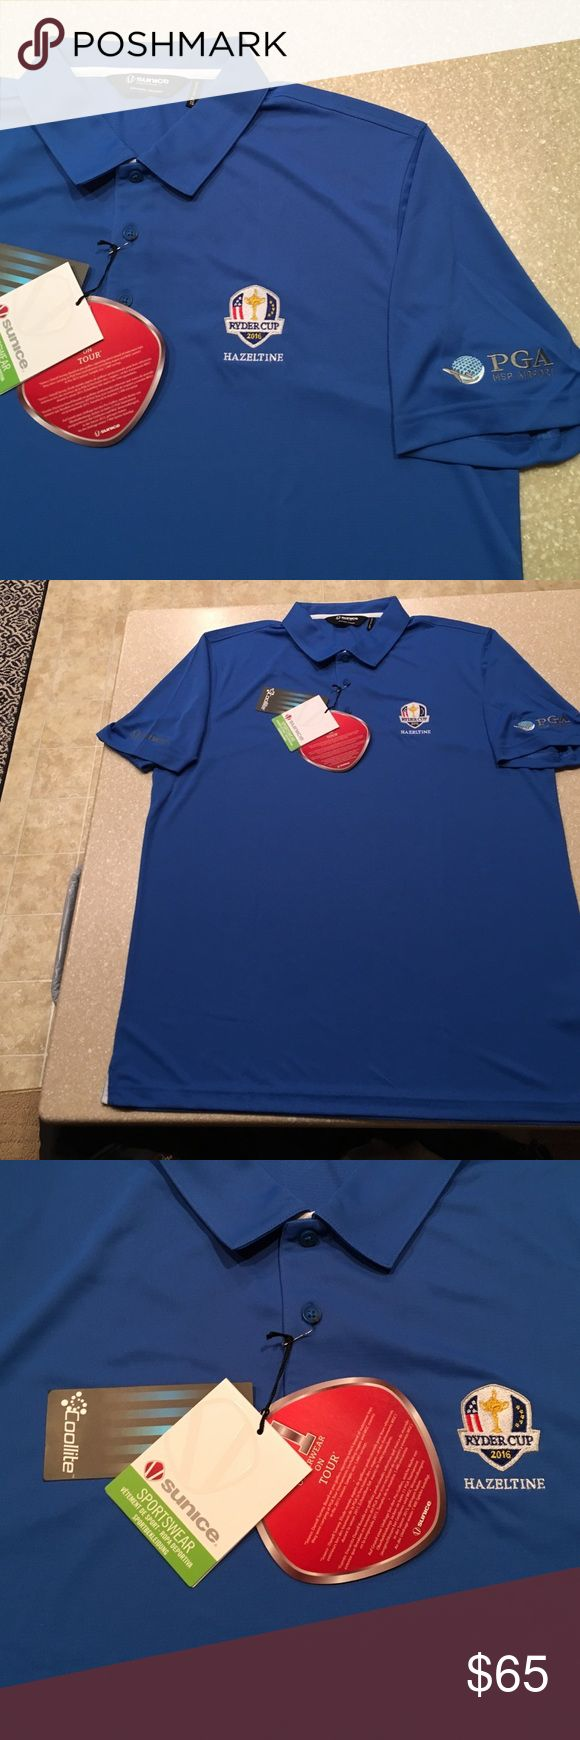 "Ryder Cup 2016 Haseltine PGA tour golf shirt XL Brand-new never worn tags on. Royal blue short sleeve. Size XL. Embroidered Ryder Cup 2016 Hazeltine logo. One sleeve has embroidered PGA MSP AIRPORT logo, other sleeve has ""sunice"" logo. Coolite fabric, anti-microbial & moisture wicking. SPF 30+ sunice sportswear Shirts Polos"